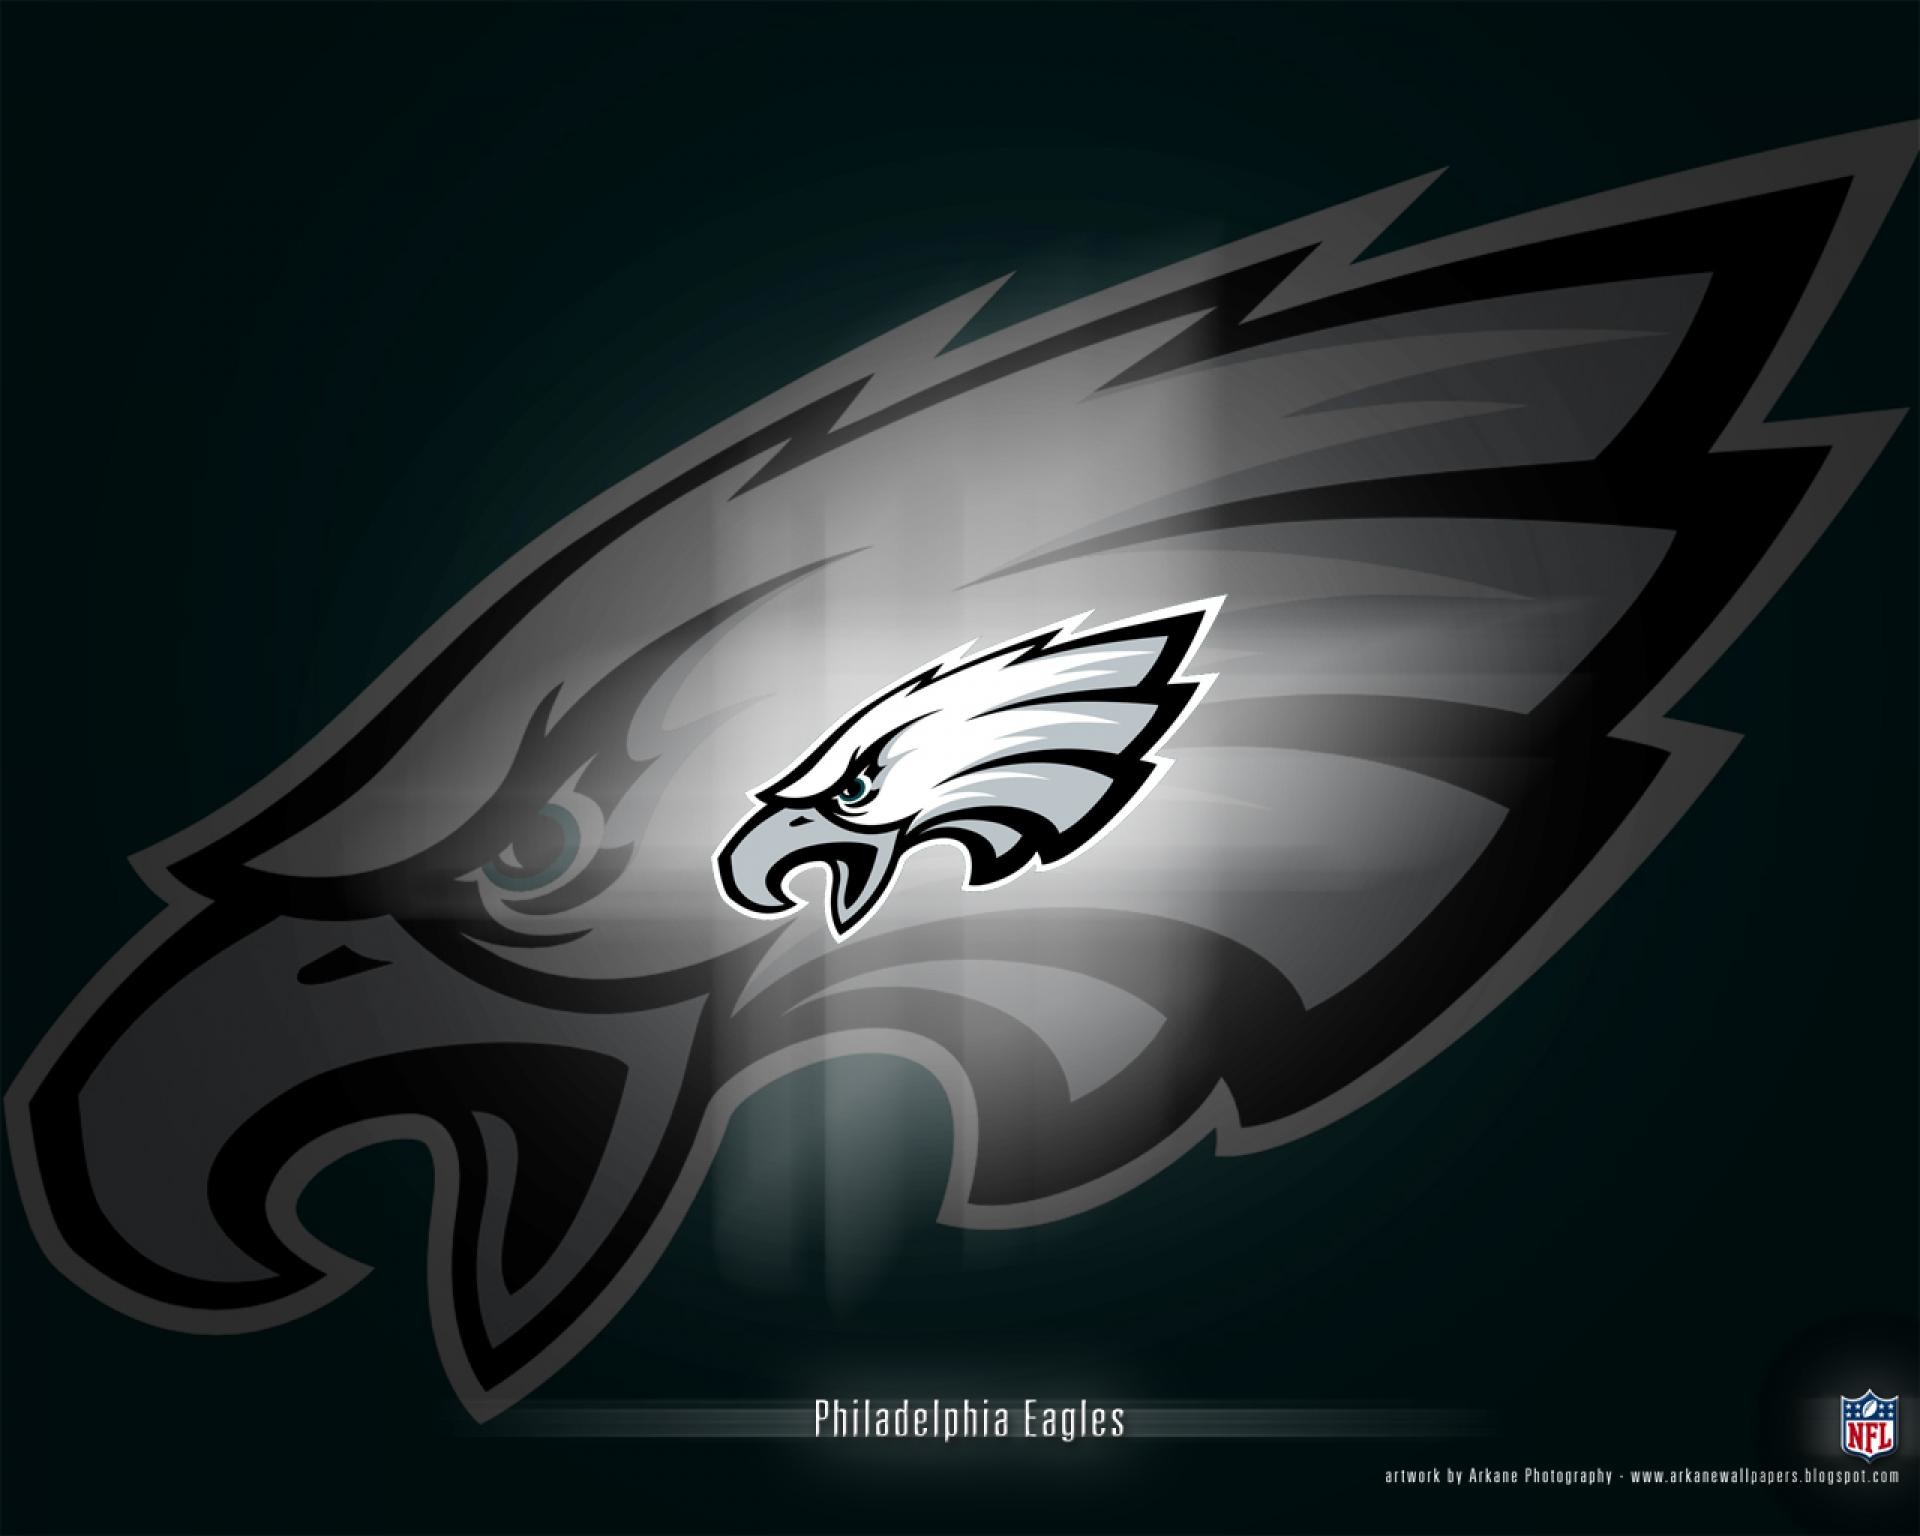 1920x1536 Philadelphia Eagles Live Wallpaper